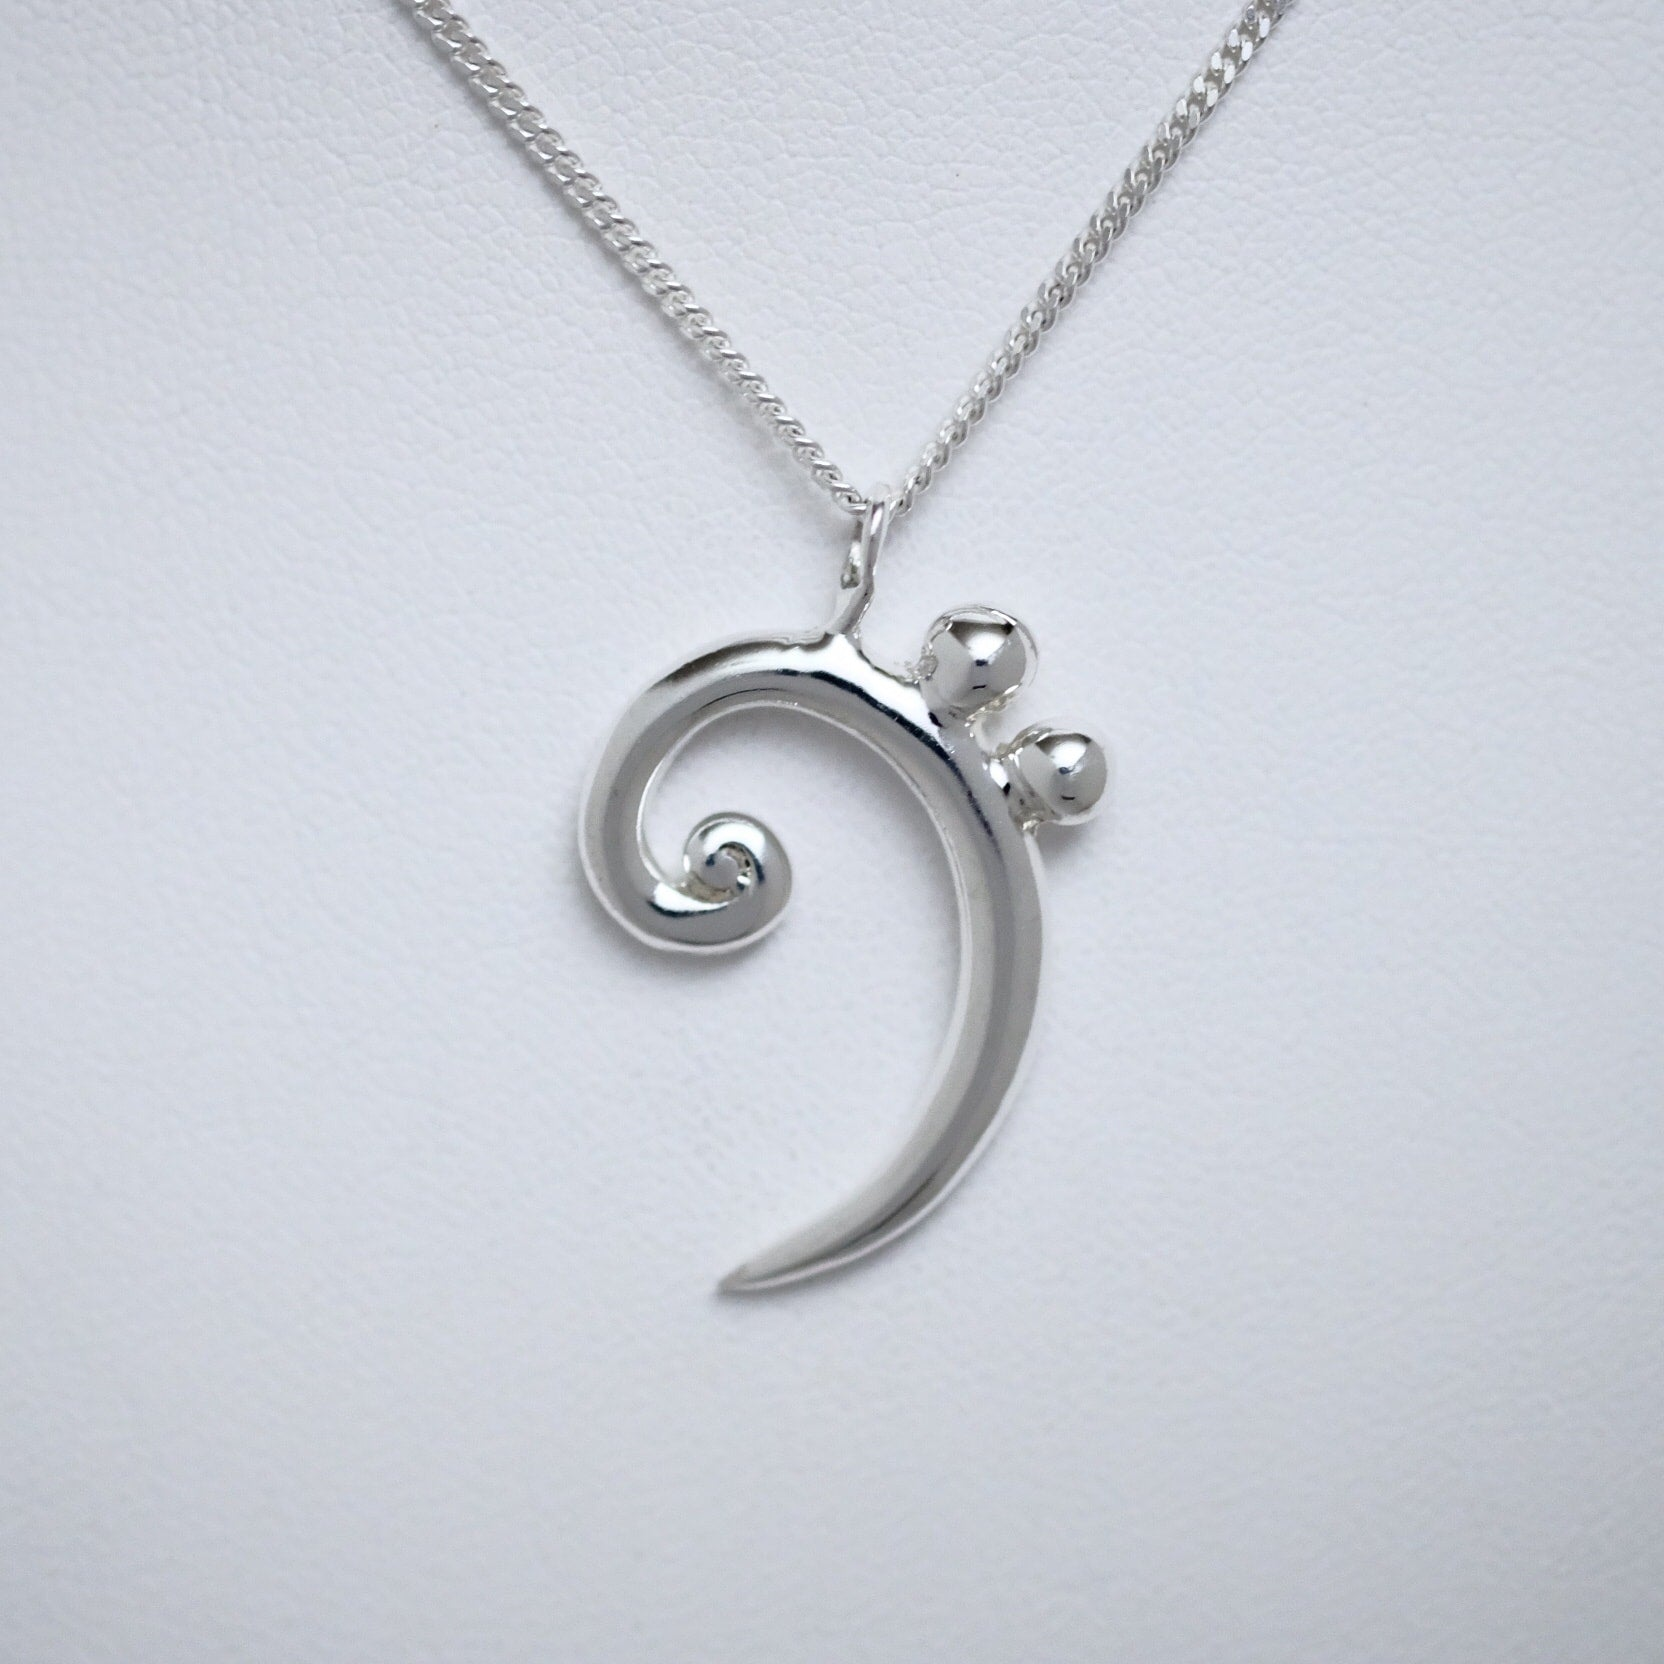 Bass Friends Bass Clef large sterling silver pendant by Joseph Chiang